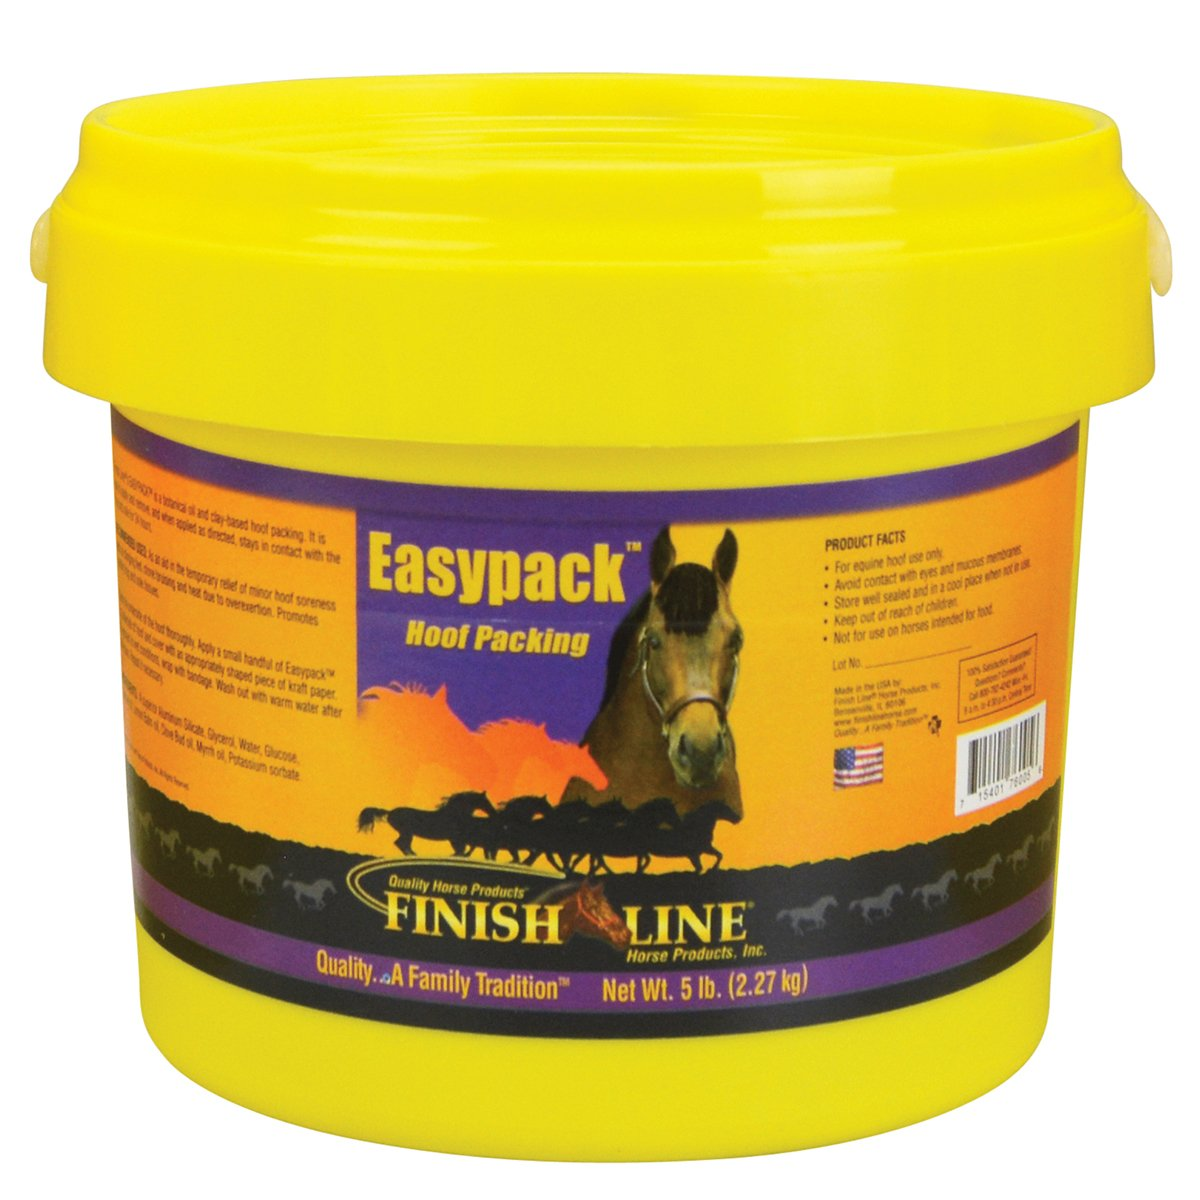 Finish Line Easypack Hoof Packing 24 lb by Finish Line